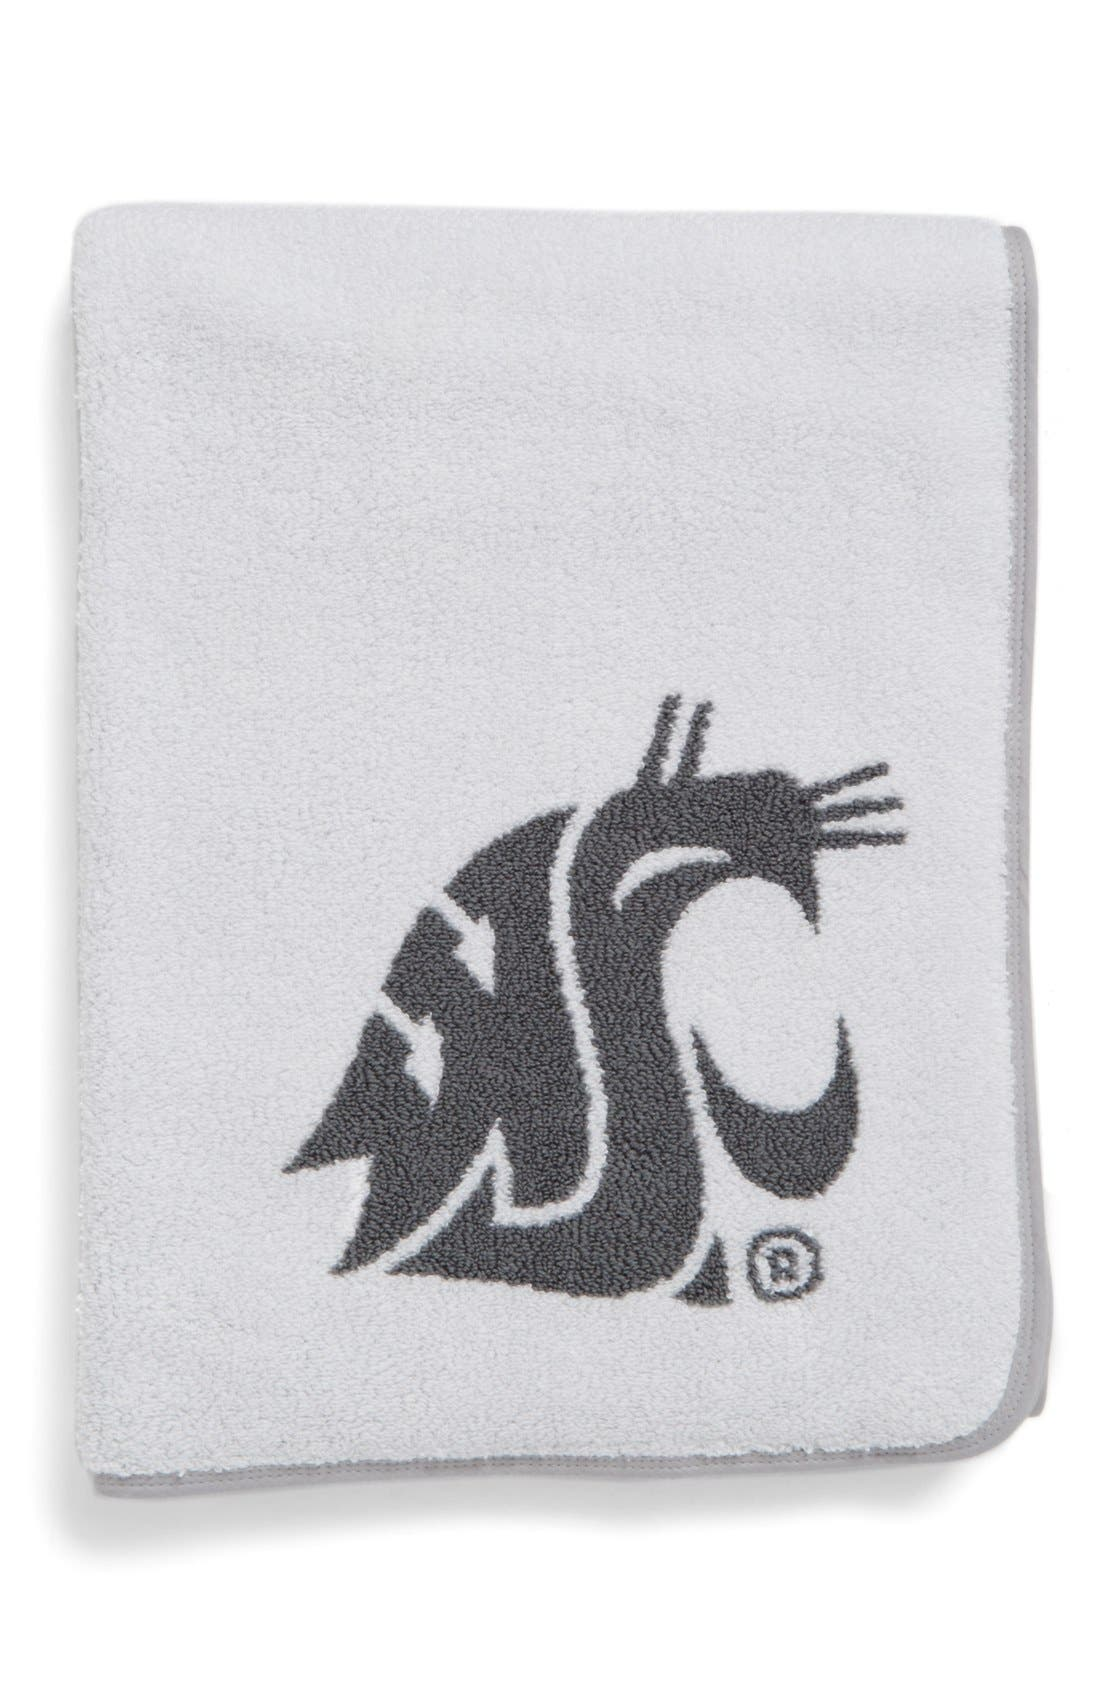 ANGOCHA 'College Pride' Bath Towel